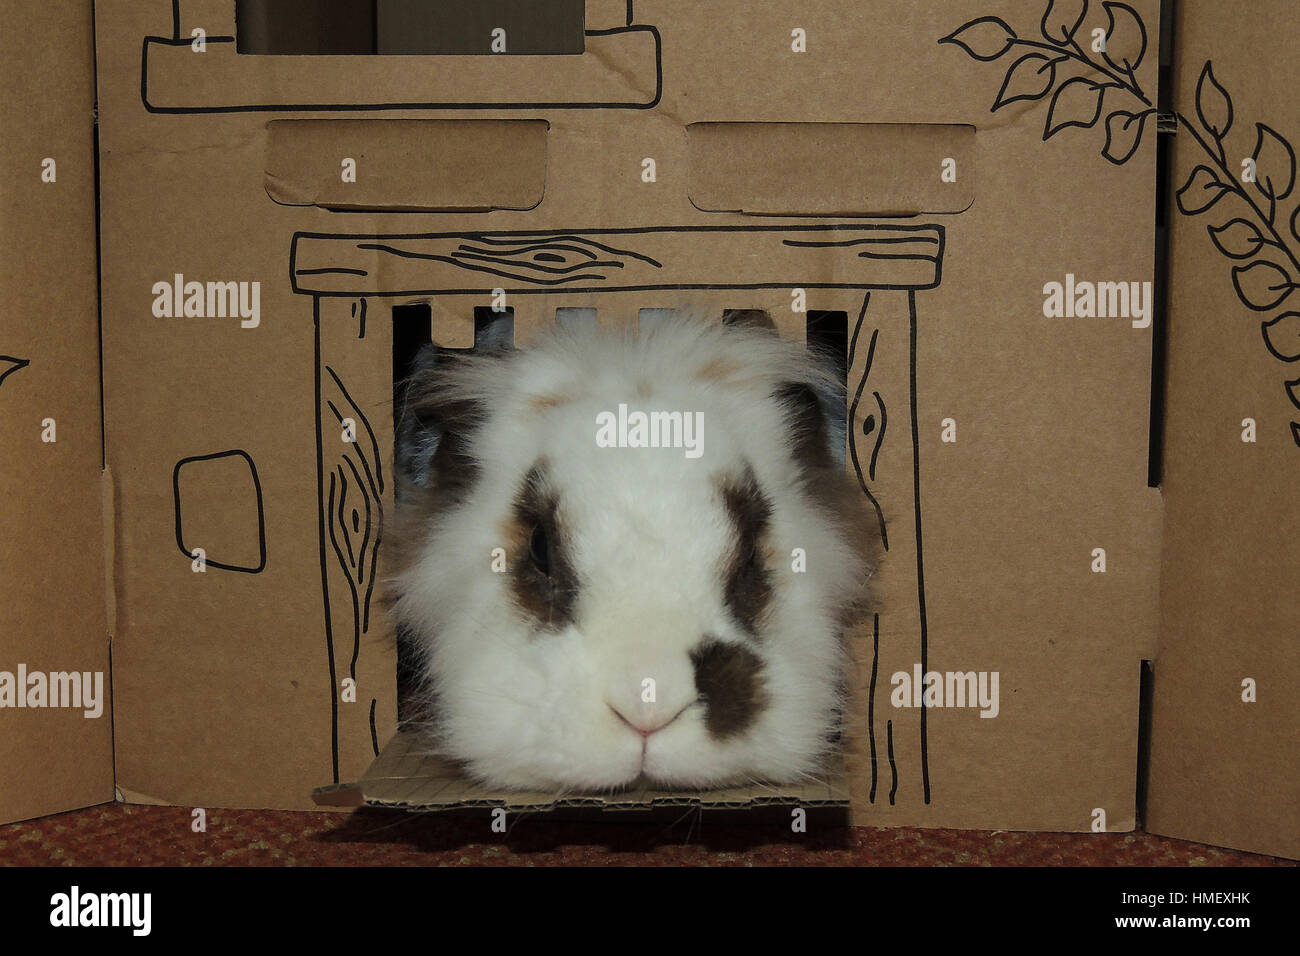 Small Lionhead rabbit with brown spots round eyes and on side of nose looking out of cardboard castle Stock Photo